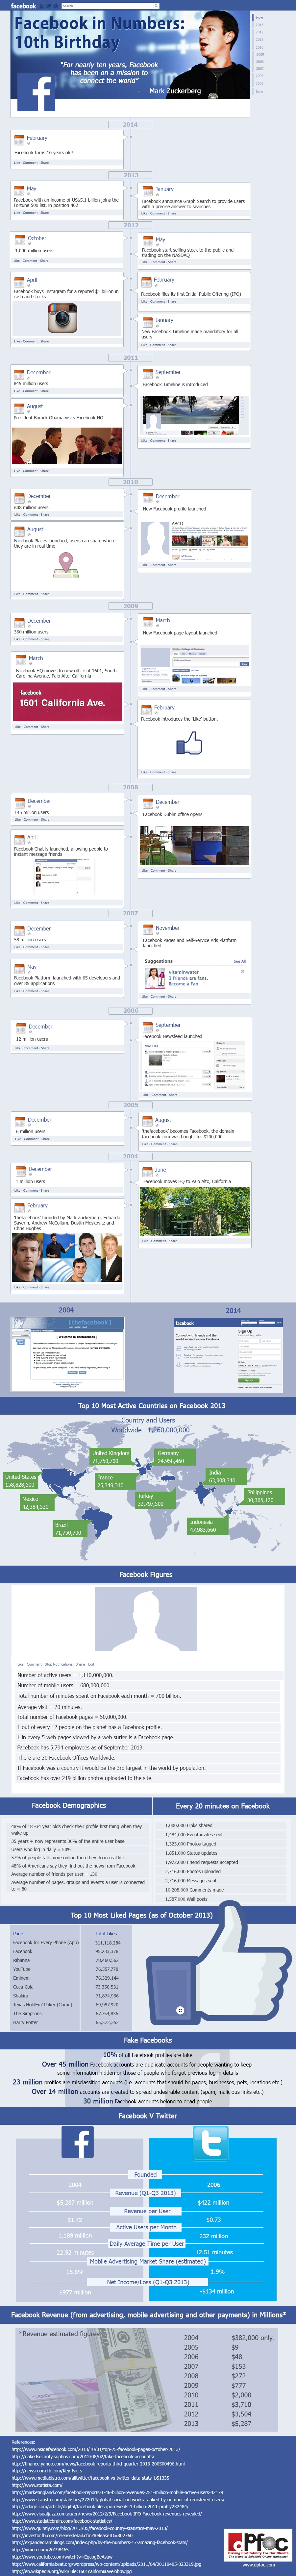 facebook-infographic